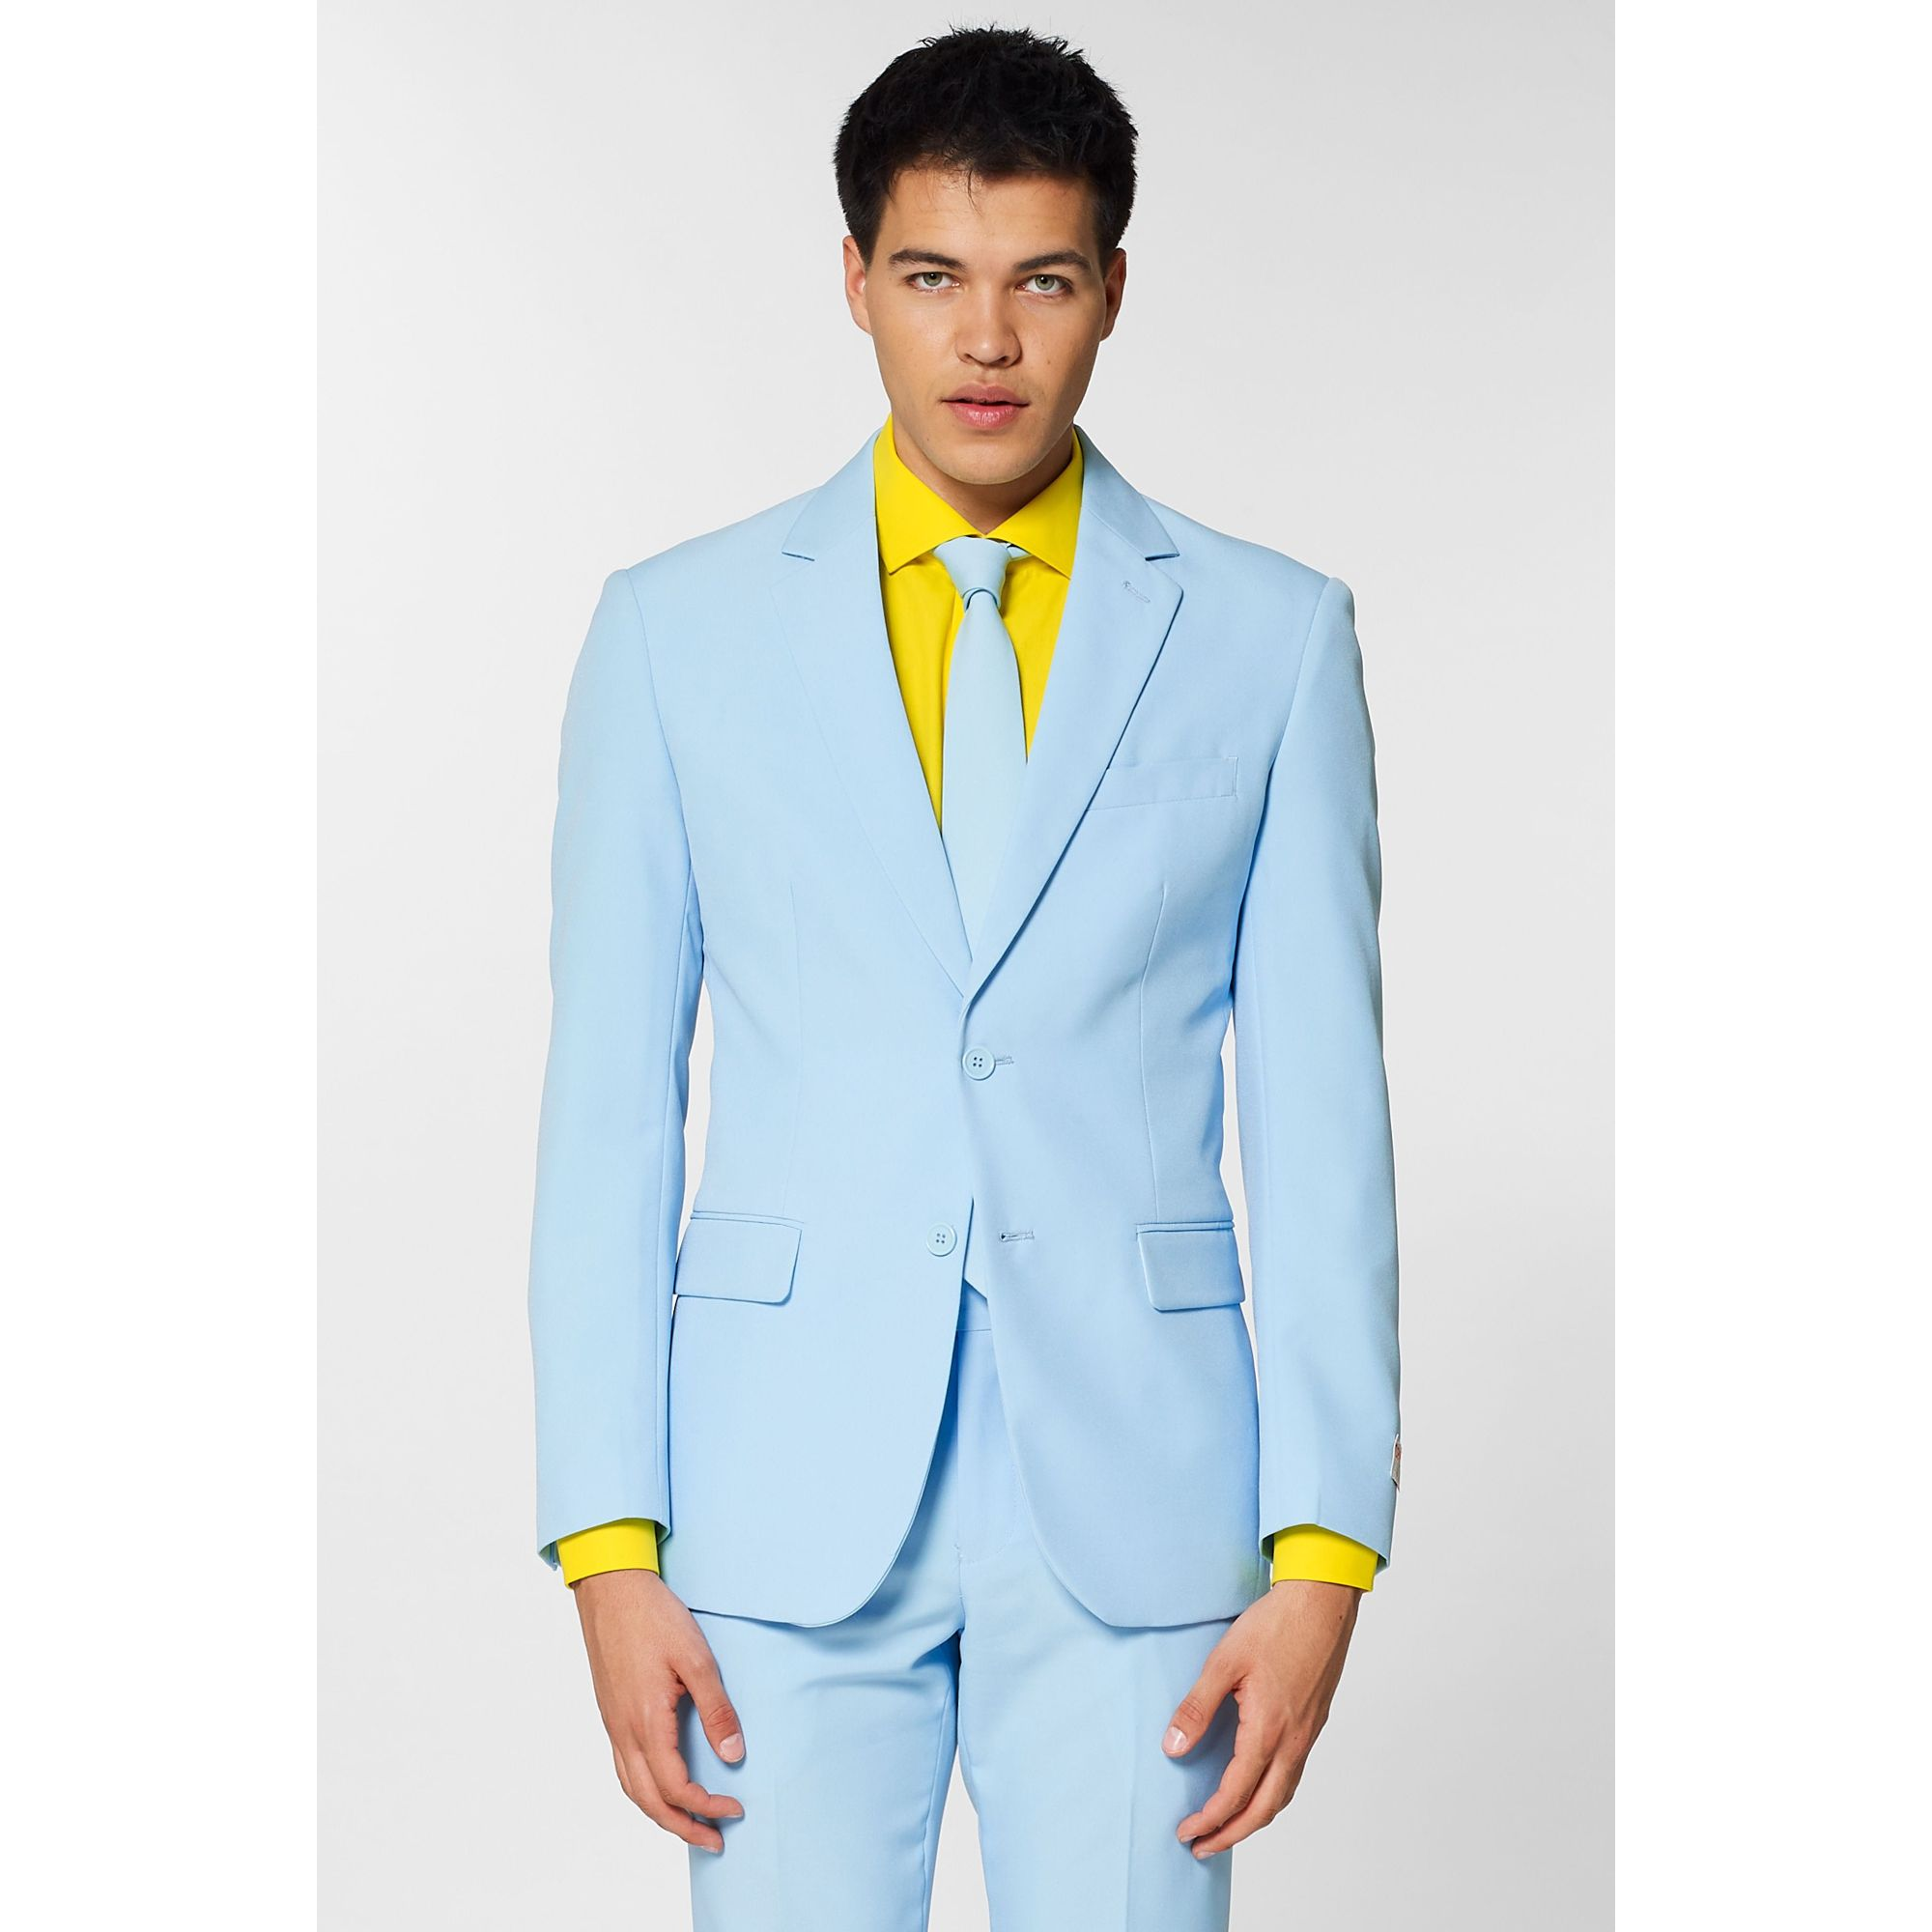 MENS ADULT SUMMER SHORTS JACKET BLUE OPPOSUITS SUIT PARTY PROM NOVELTY OUTFIT